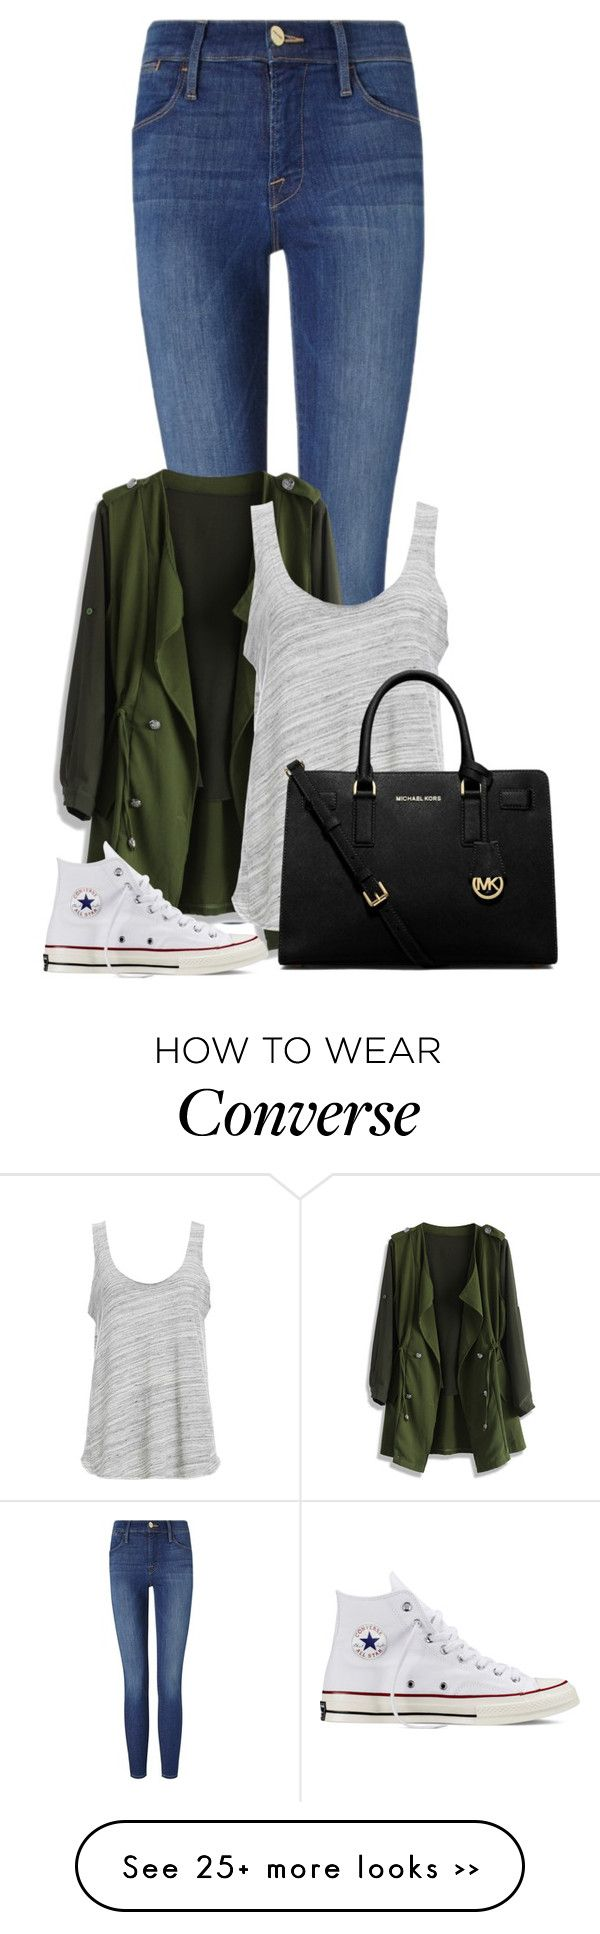 """""""Untitled #1258"""" by directioner-123-ii on Polyvore featuring Frame Denim, Chicwish, Project Social T, Converse, MICHAEL Michael Kors and FFfatifashion"""